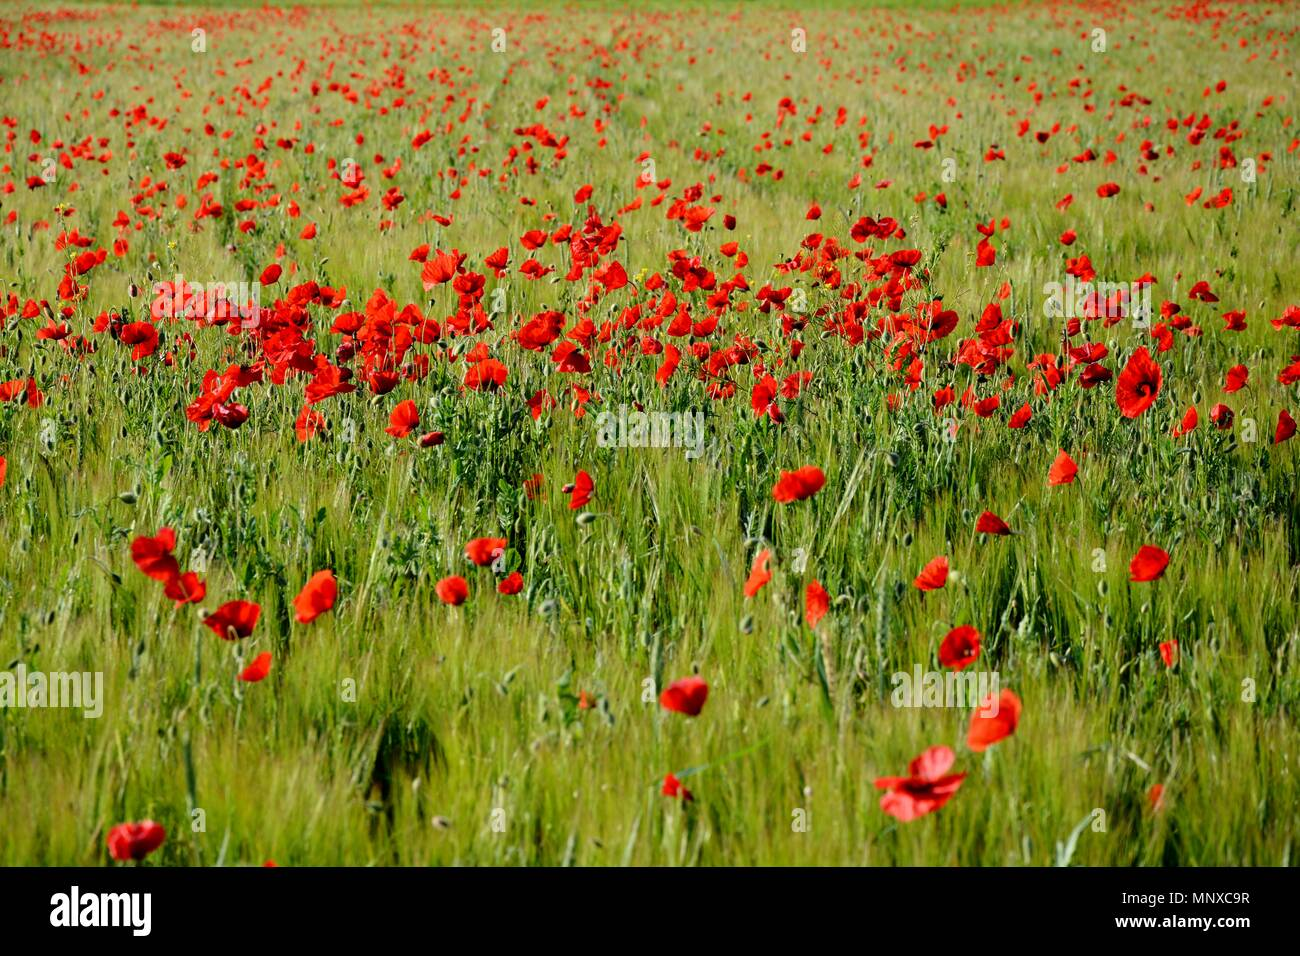 field of poppies, poppy, red, green, field - Stock Image